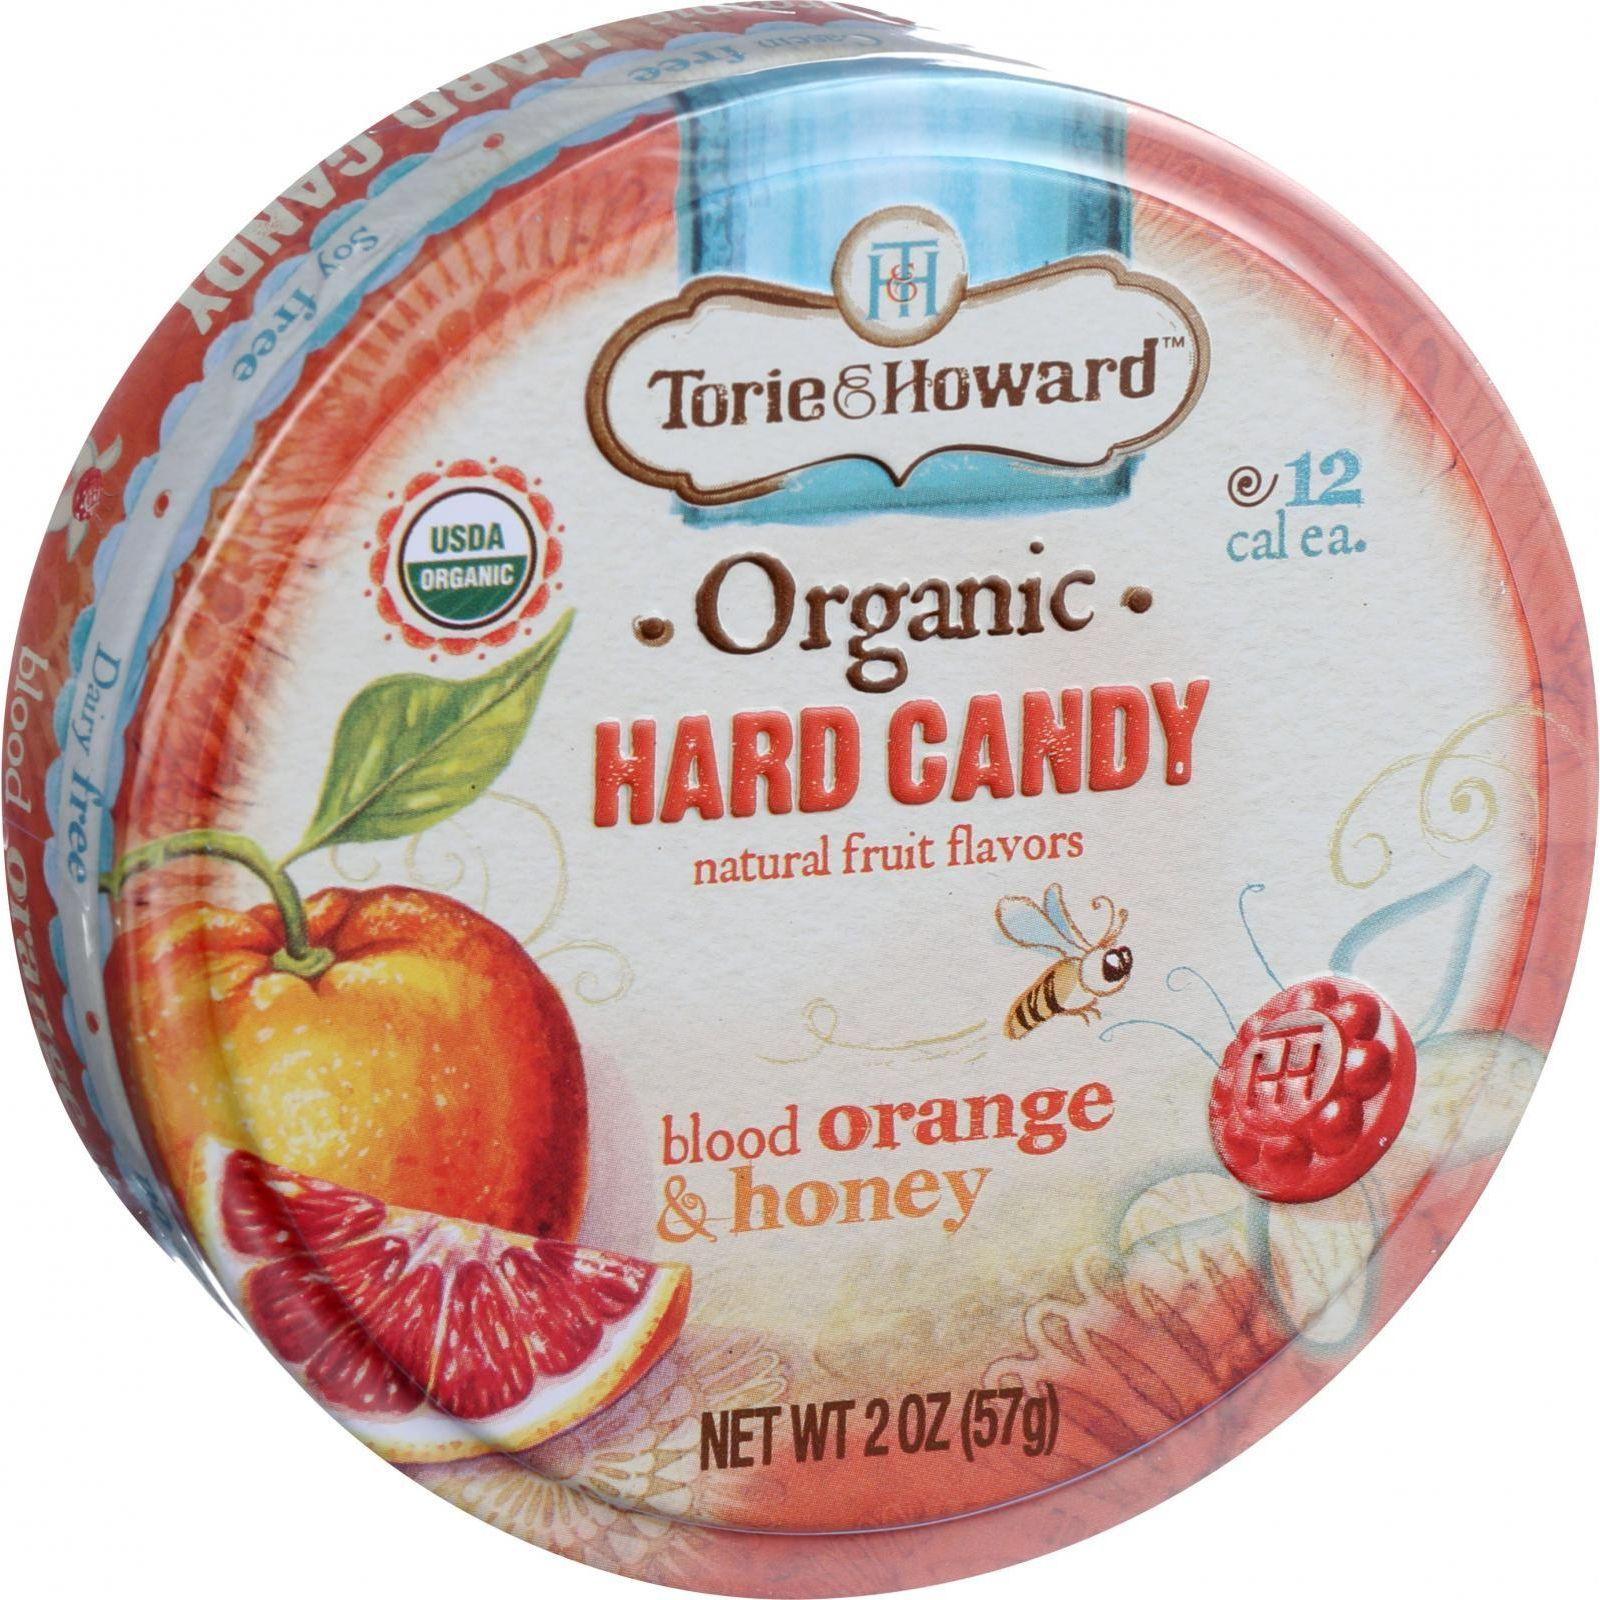 Torie and Howard Organic Hard Candy - Blood Orange and Honey - 2 oz - Case of 8